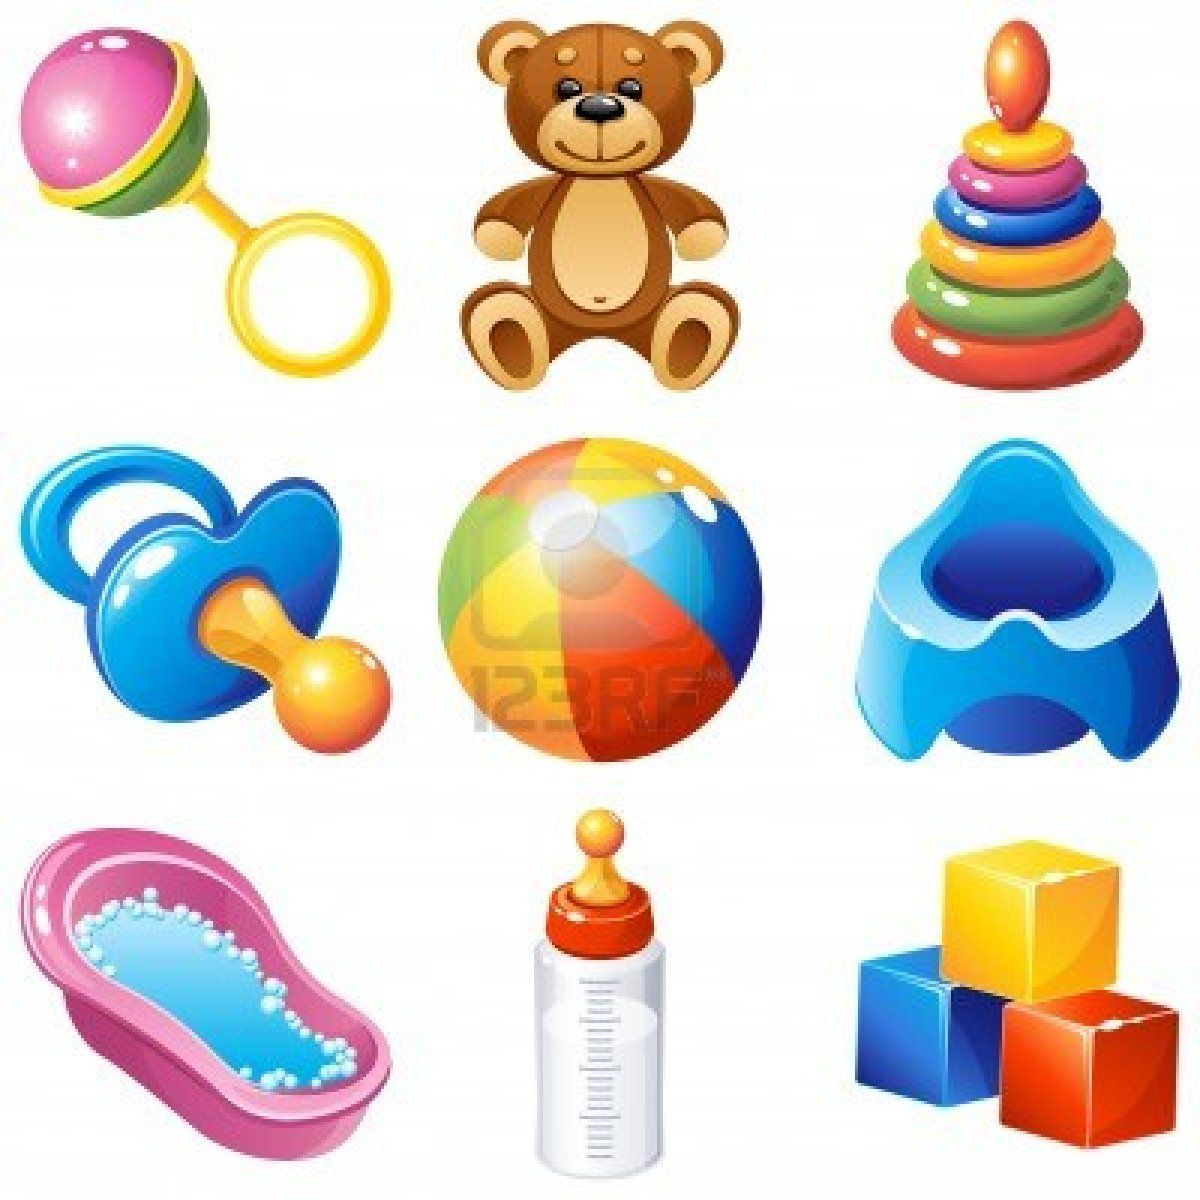 baby stuff 2 clip art pinterest clip art and baby items rh pinterest com baby stuff clipart illustrations baby stuff clipart png